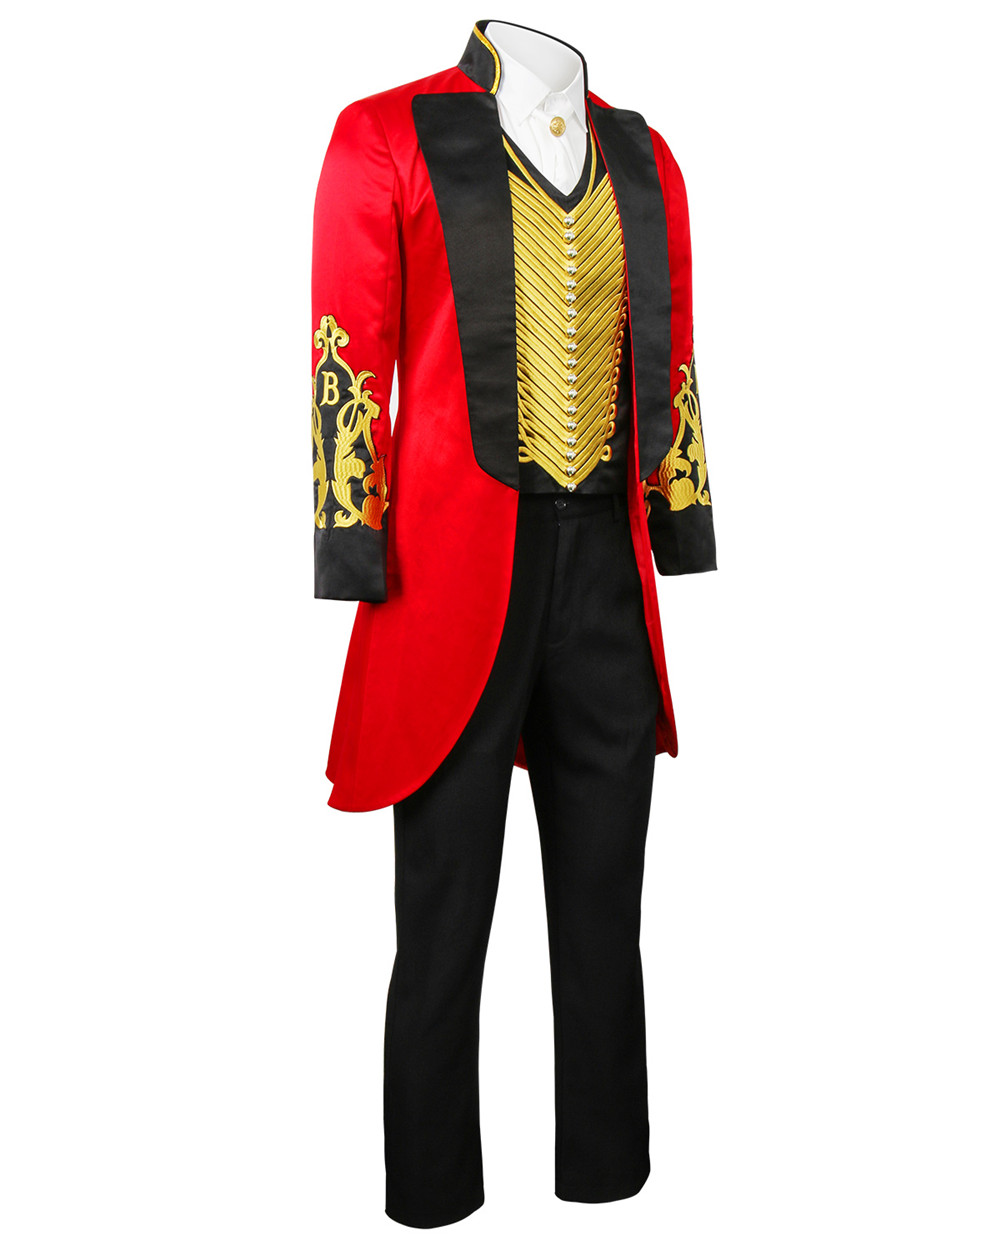 Image 3 - The Greatest Showman P.T. Barnum Cosplay Costume Outfit Adult Men Full Set Uniform Halloween Carnival Cosplay Outfit Custom Made-in Movie & TV costumes from Novelty & Special Use